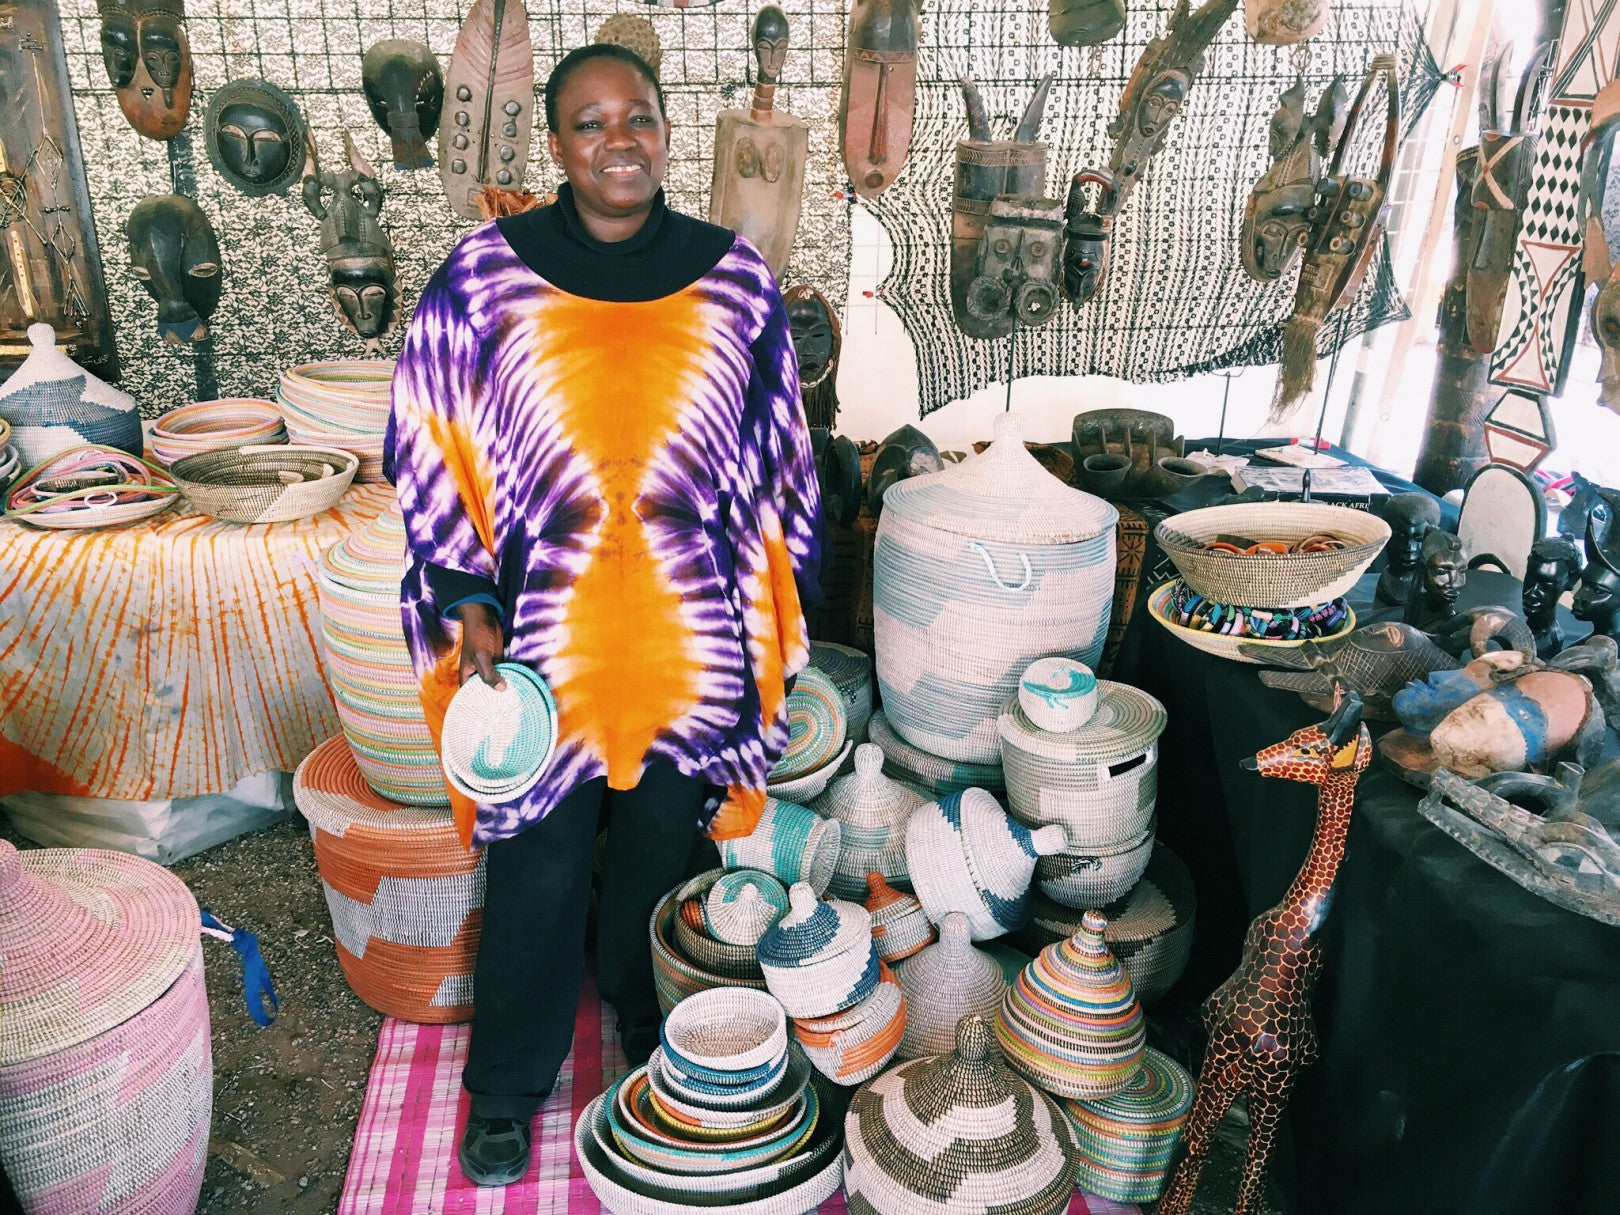 handwoven baskets from Africa